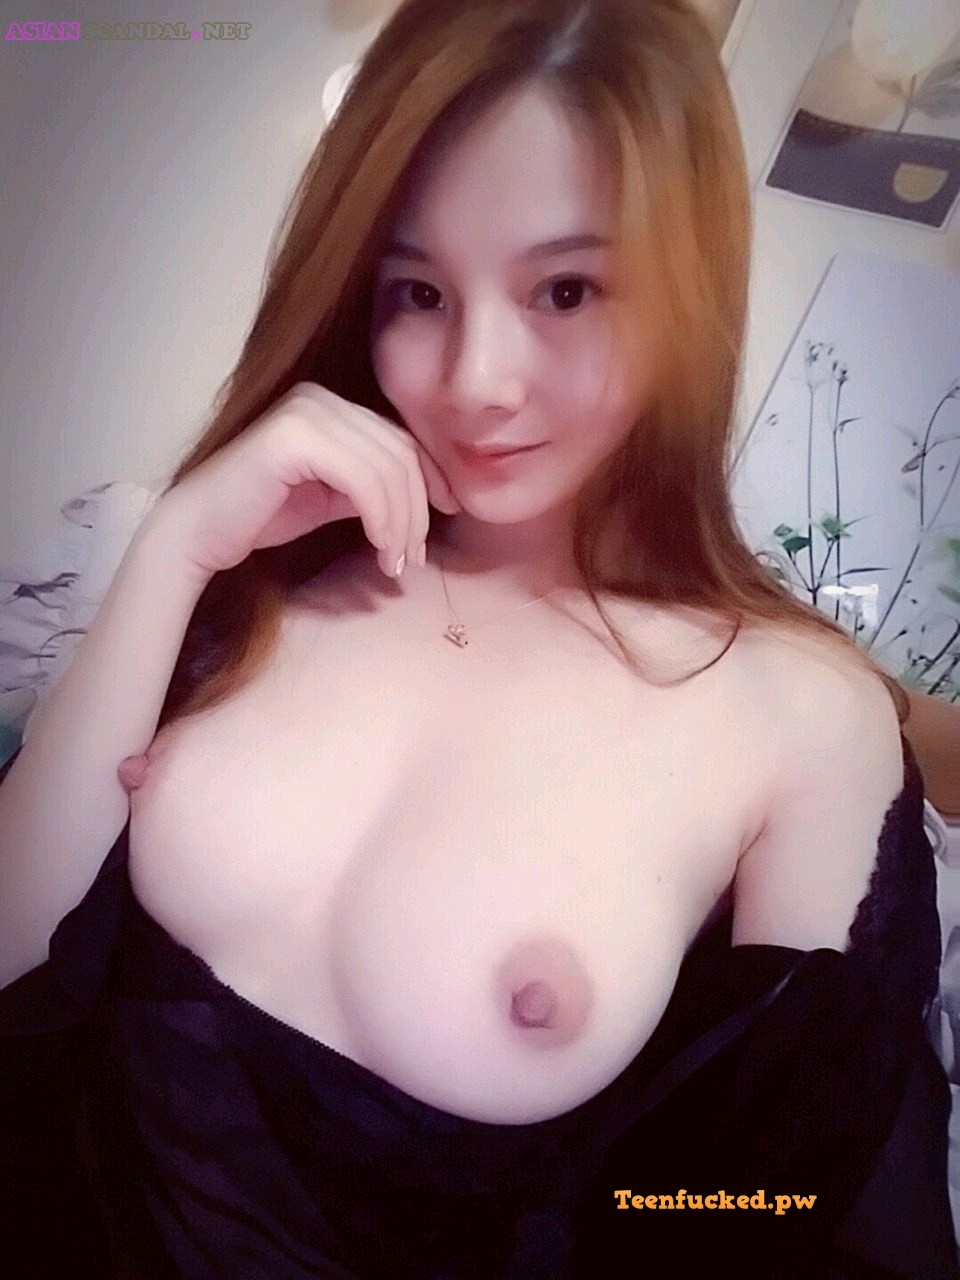 koVIMXLJE9U wm - Cute asian girl selfie big tits very hot 2020